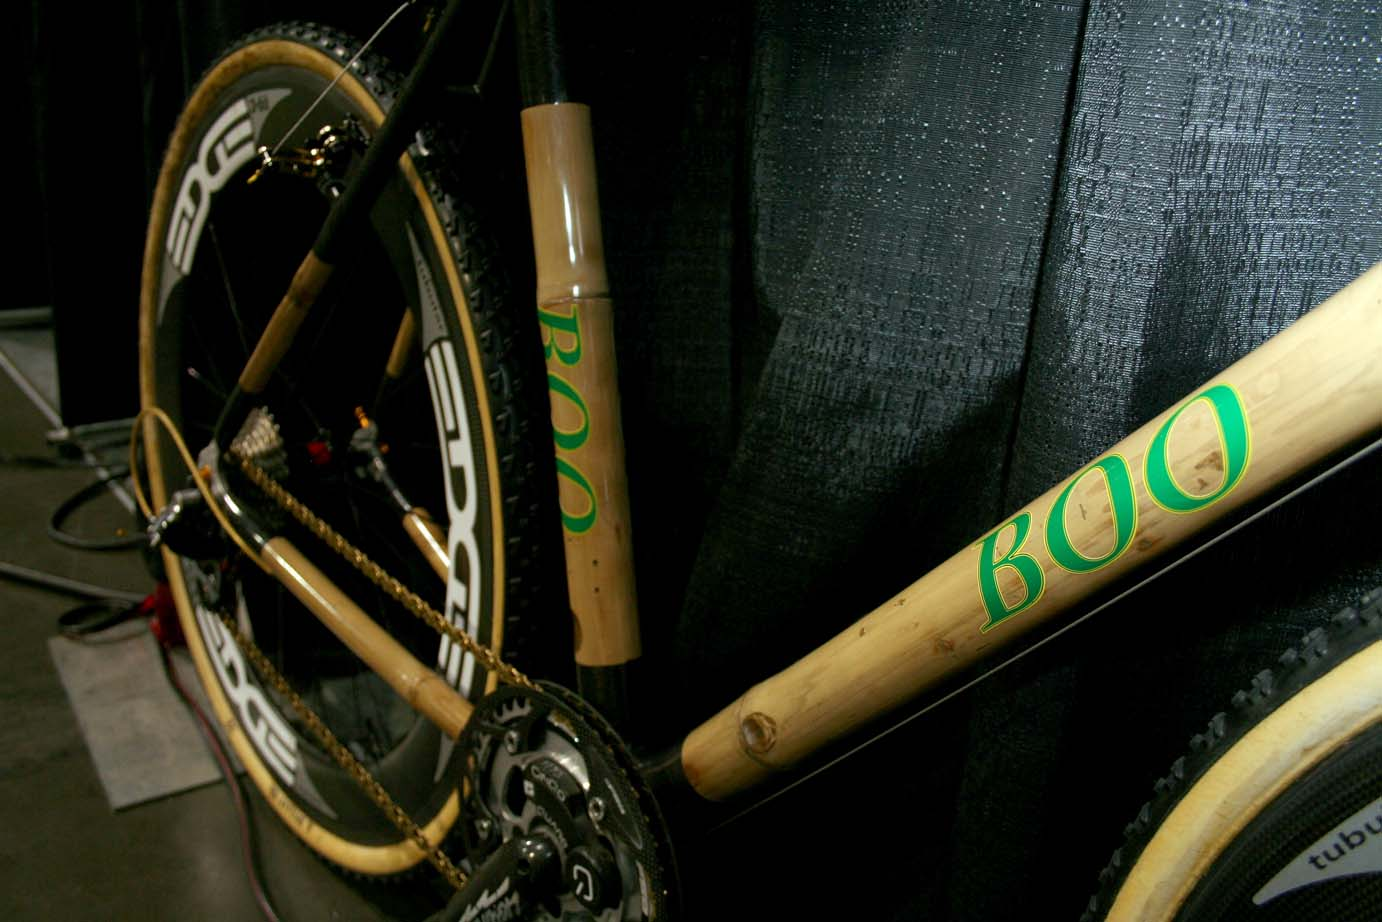 Boo\'s hand-made, bamboo and carbon cyclocross bike at Interbike